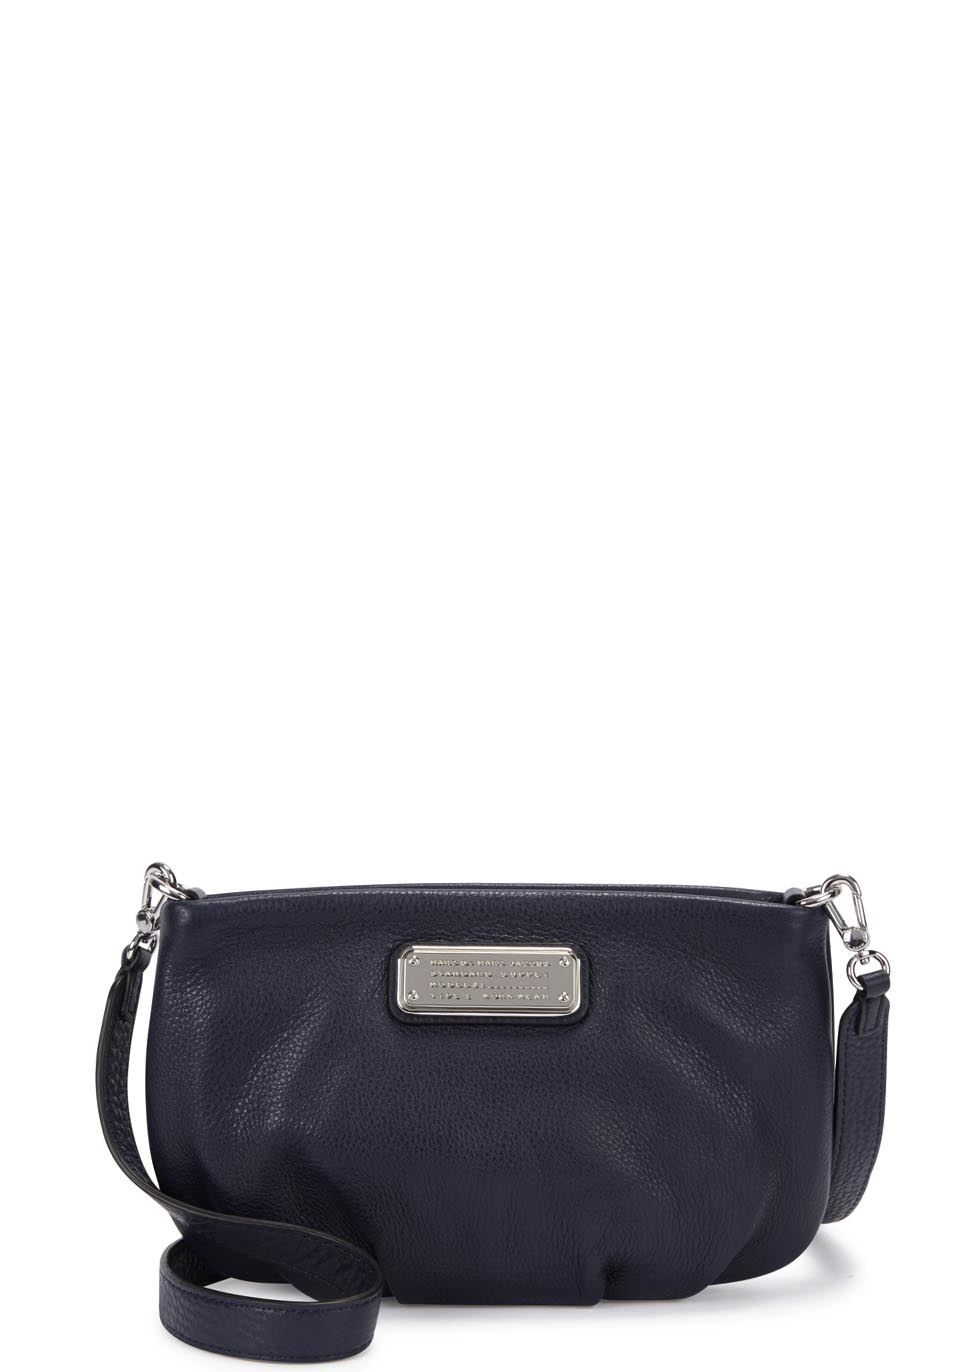 06a44f5286 Marc By Marc Jacobs New Q Percy Navy Leather Cross-body Bag in Blue - Lyst